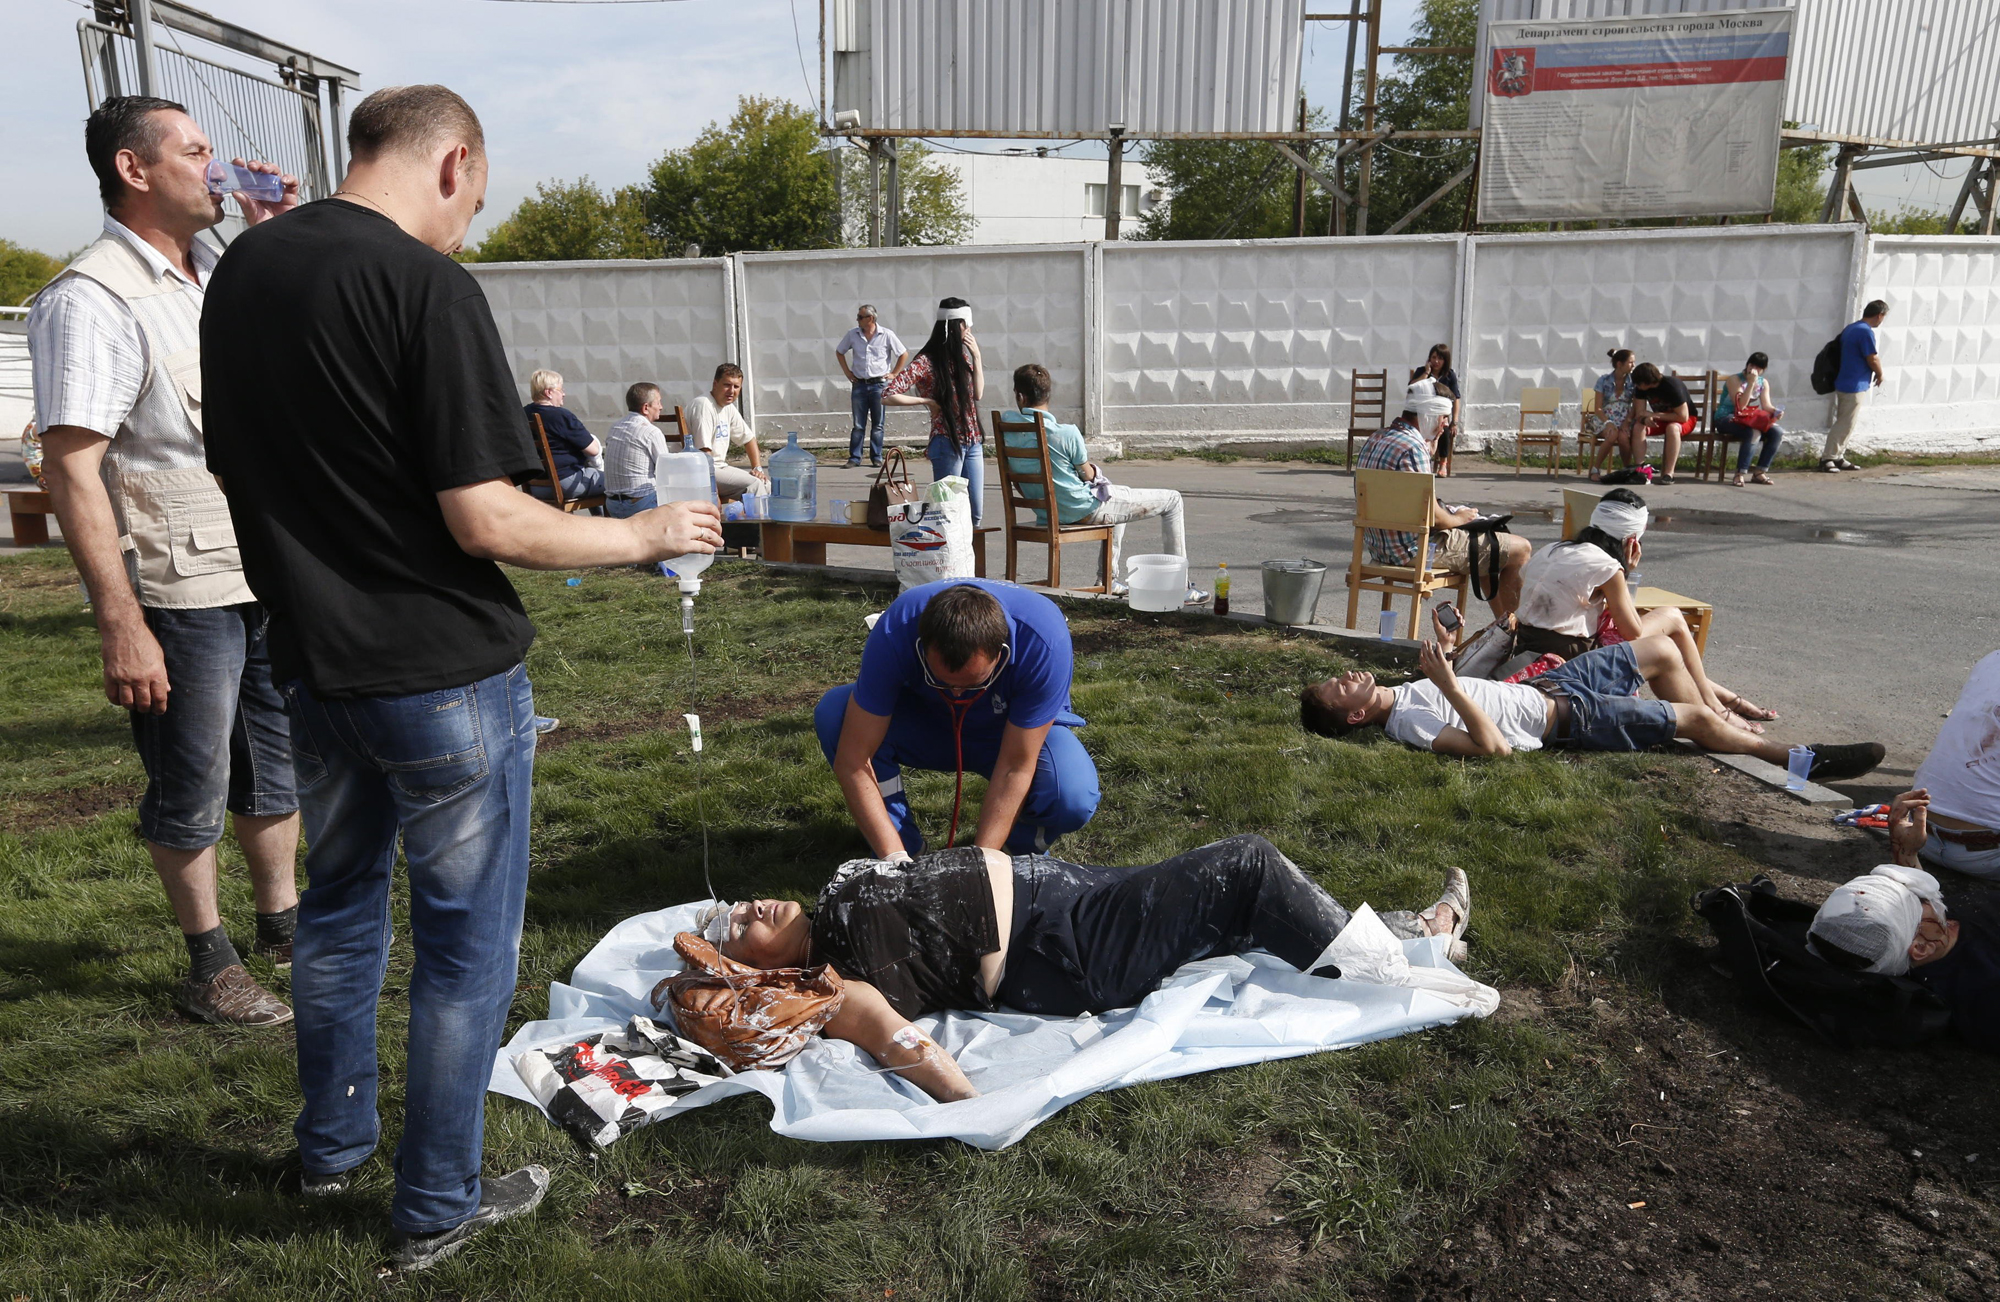 People injured in a Moscow metro derailment, July 15, 2014.